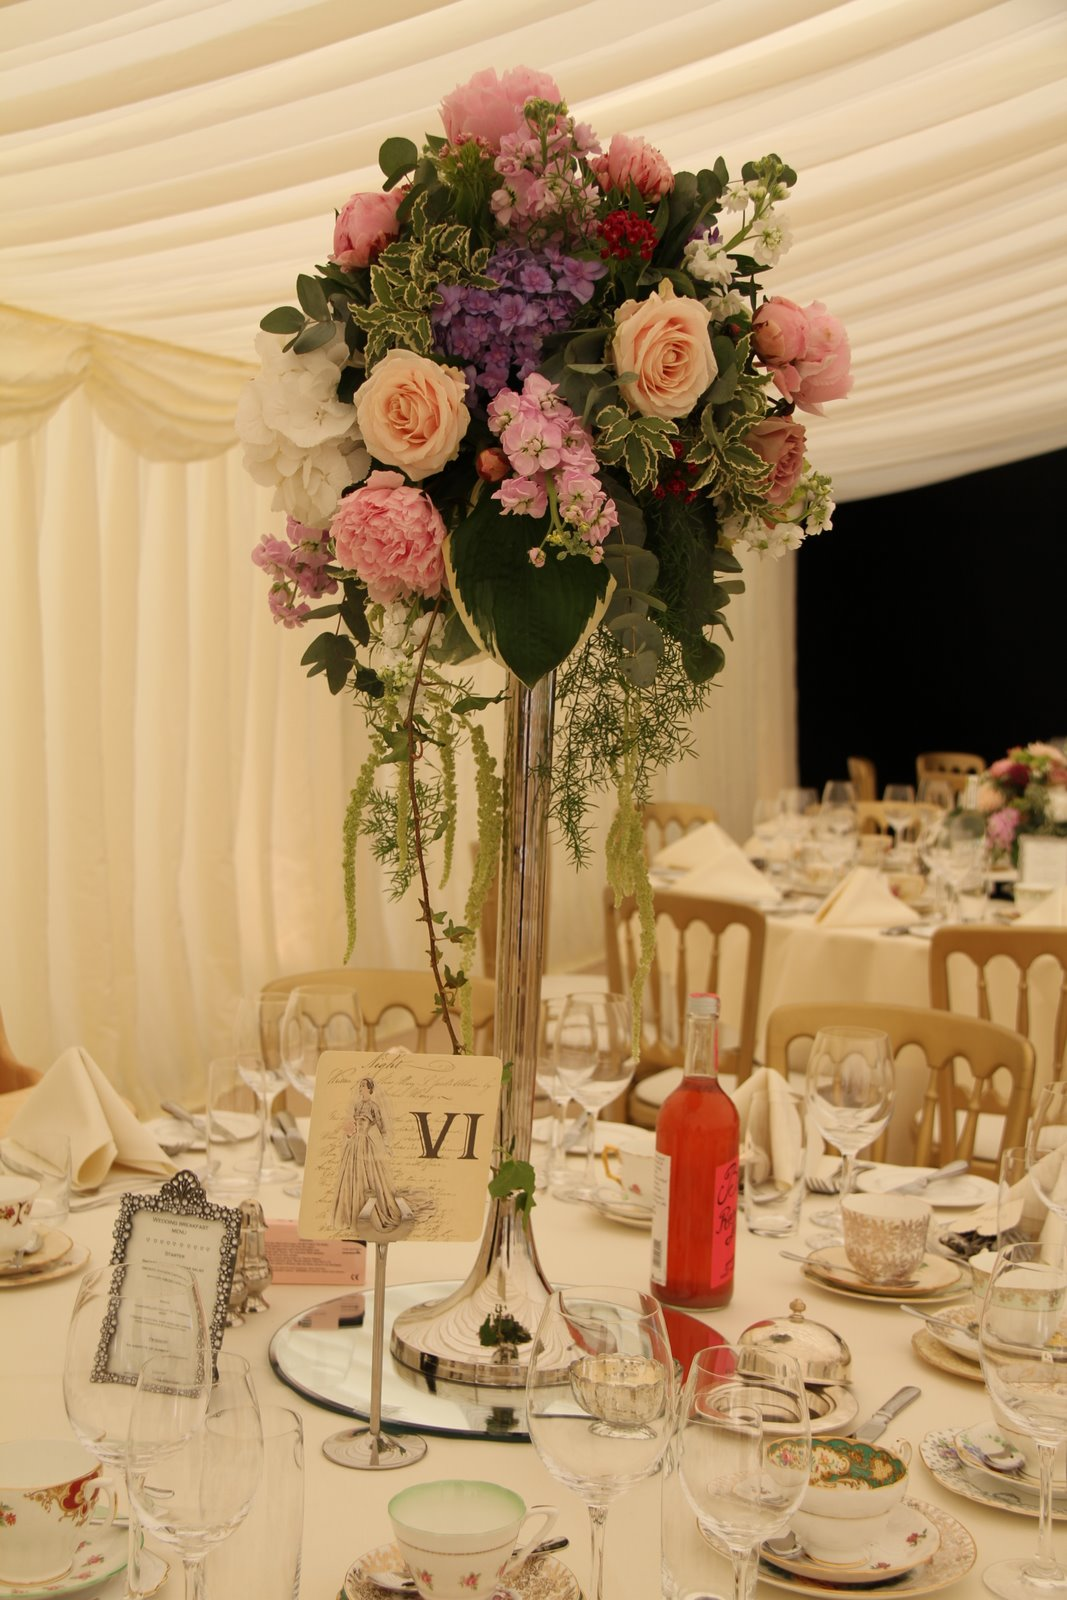 Flower design table centrepieces silver candlestick table for Table centrepiece